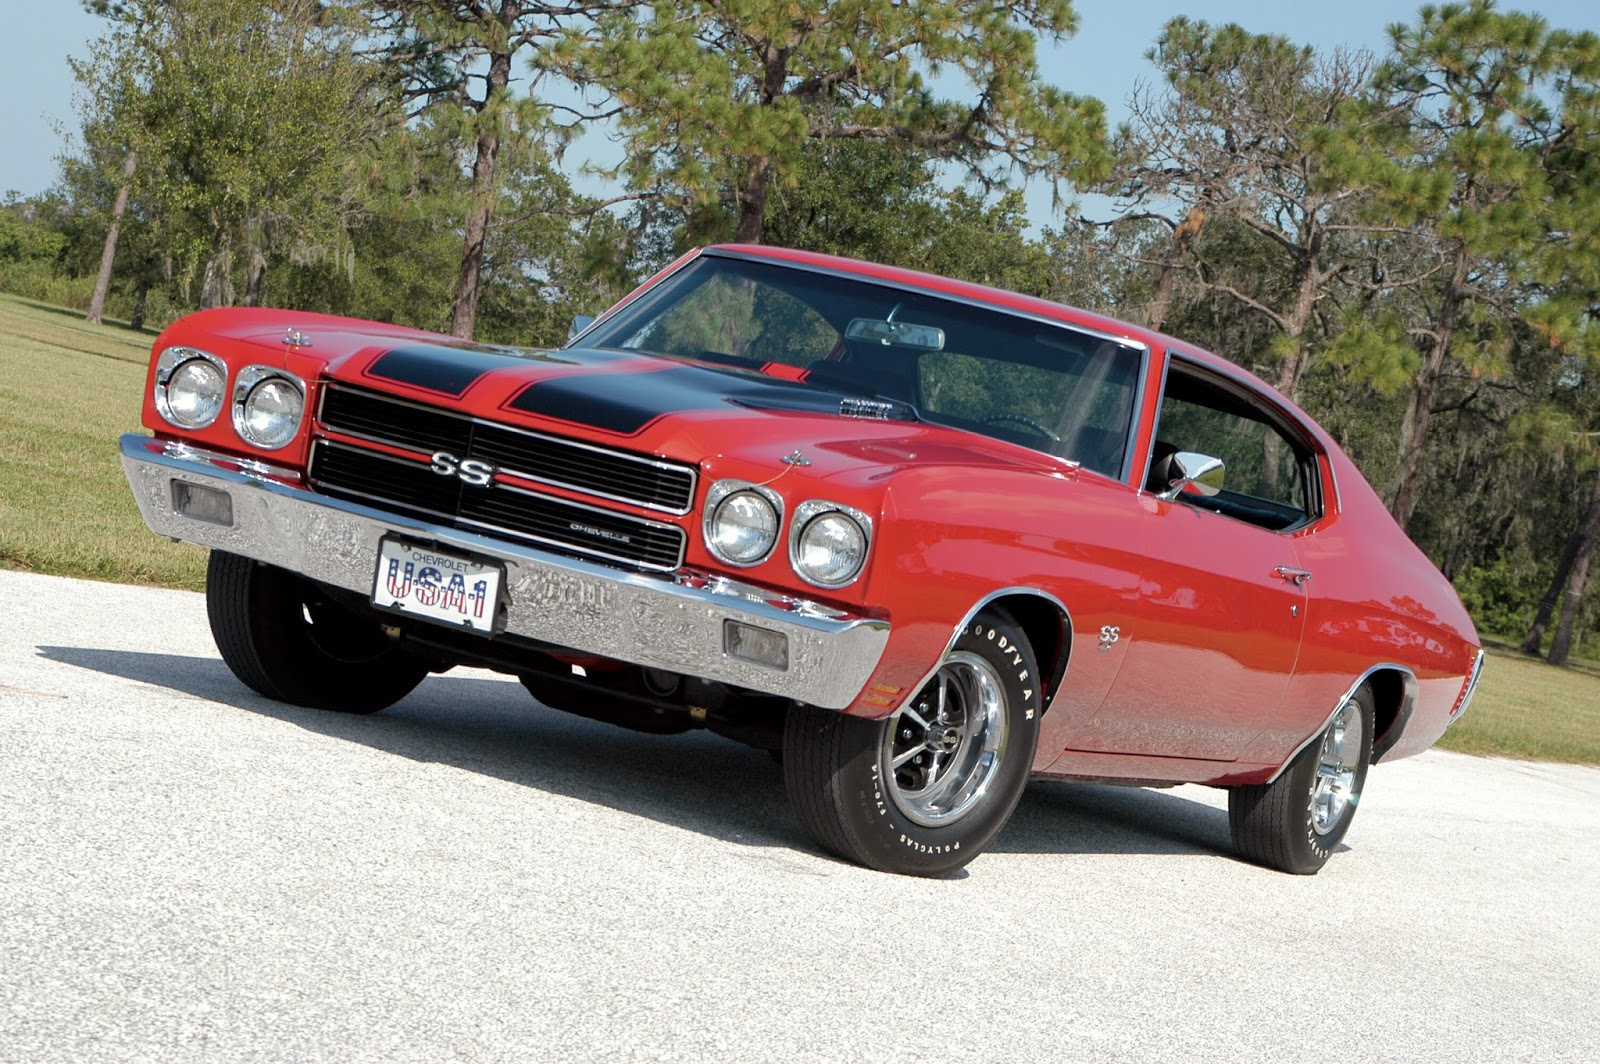 The Fast and Furious: 1970 Chevelle SS